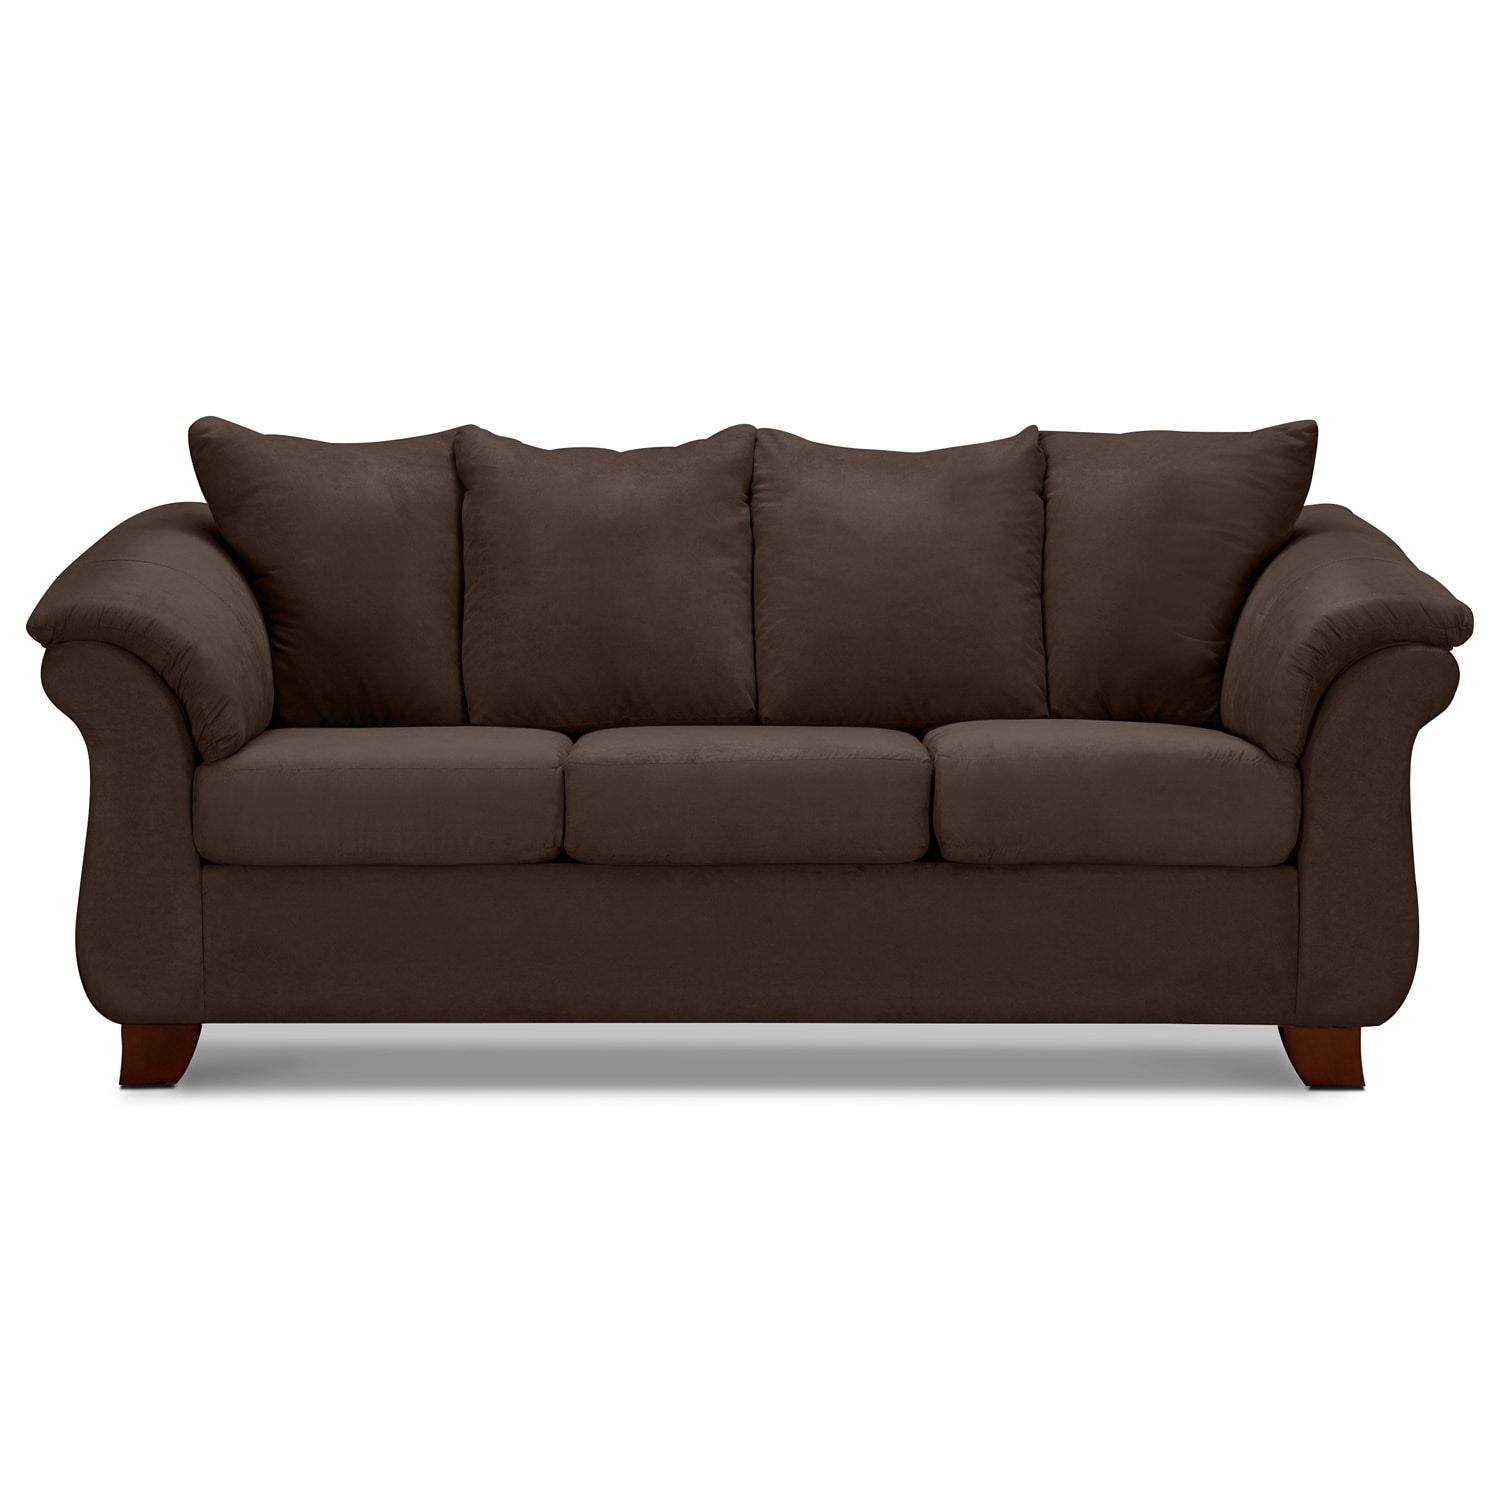 Adrian sofa chocolate value city furniture for Divan furniture